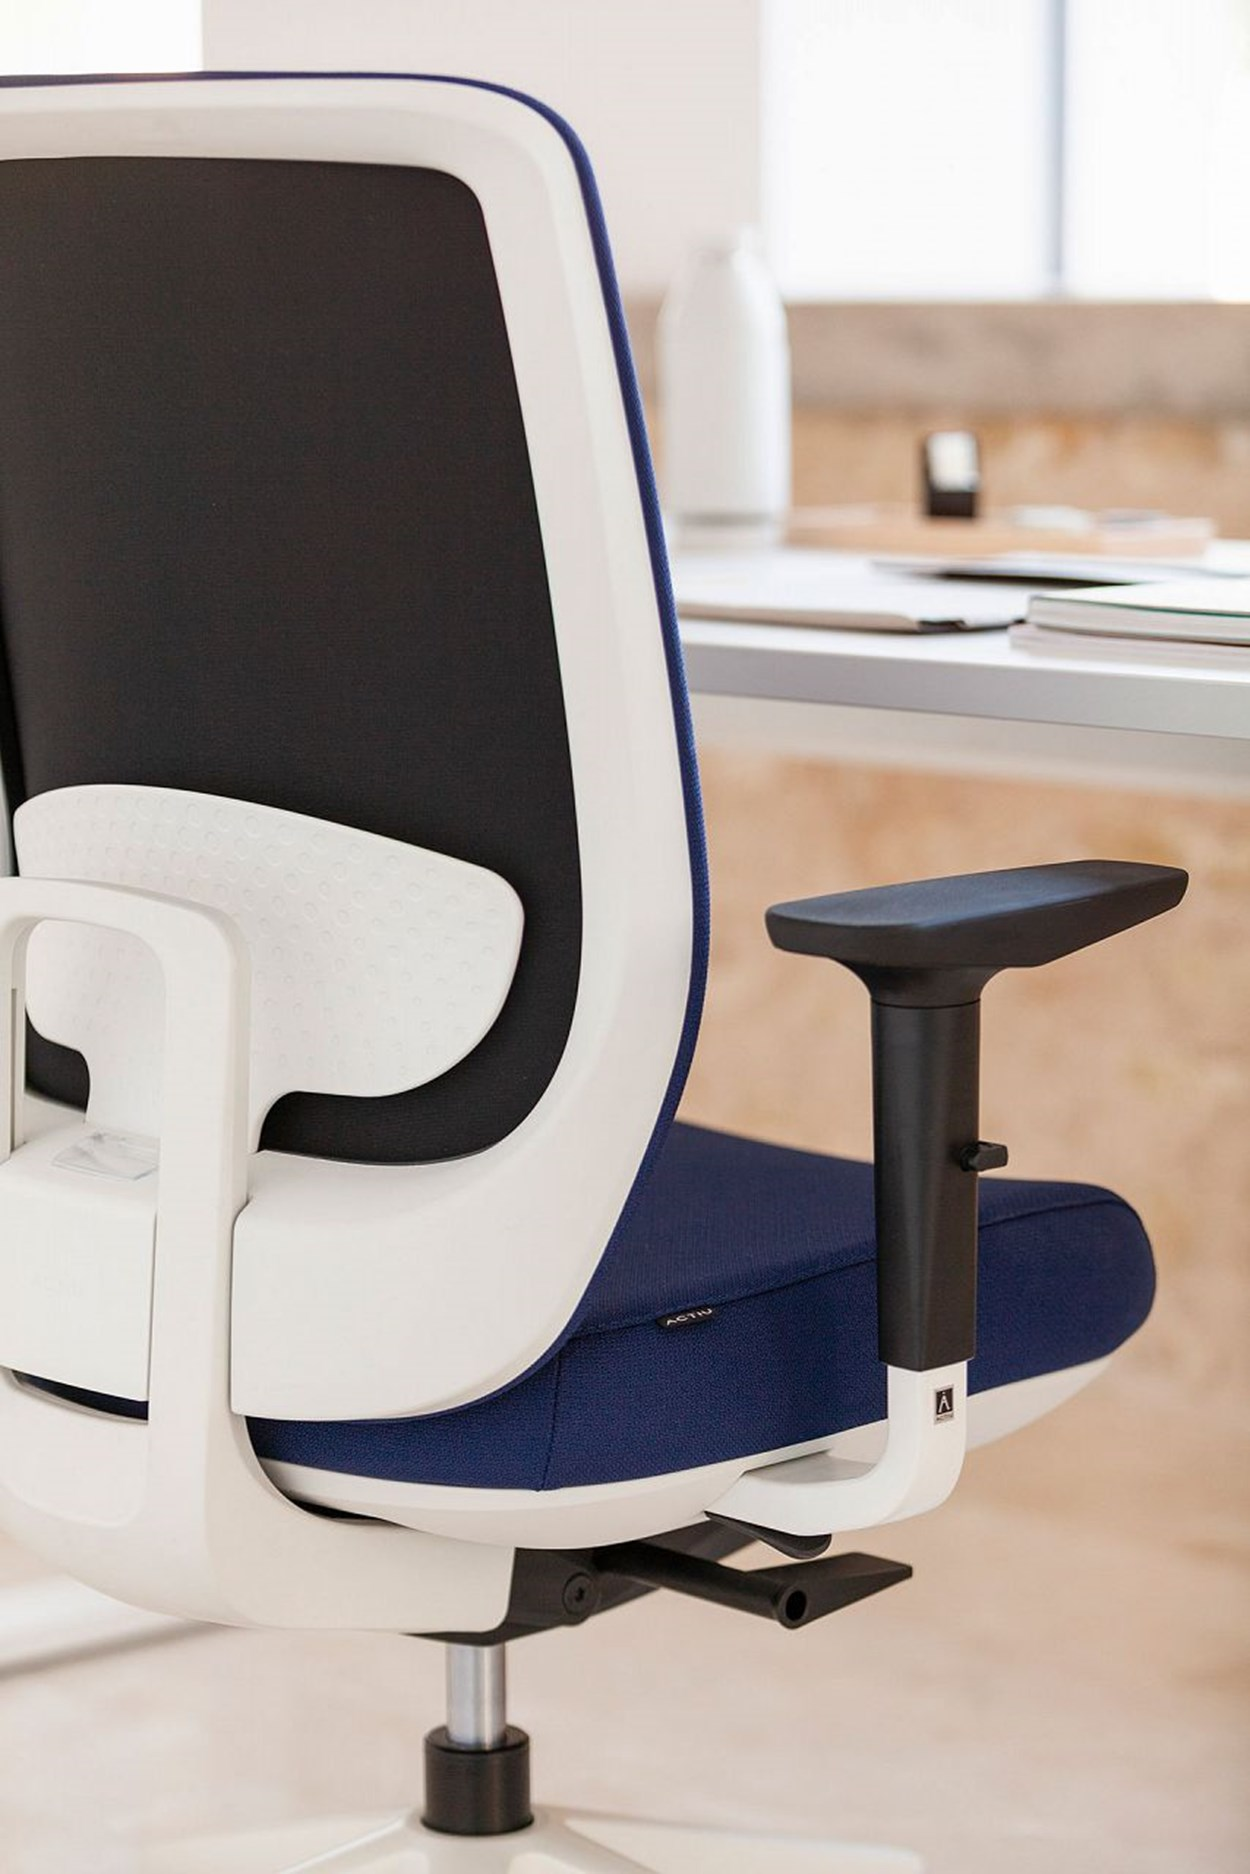 actiu-trim-50-office-chair-8.jpg